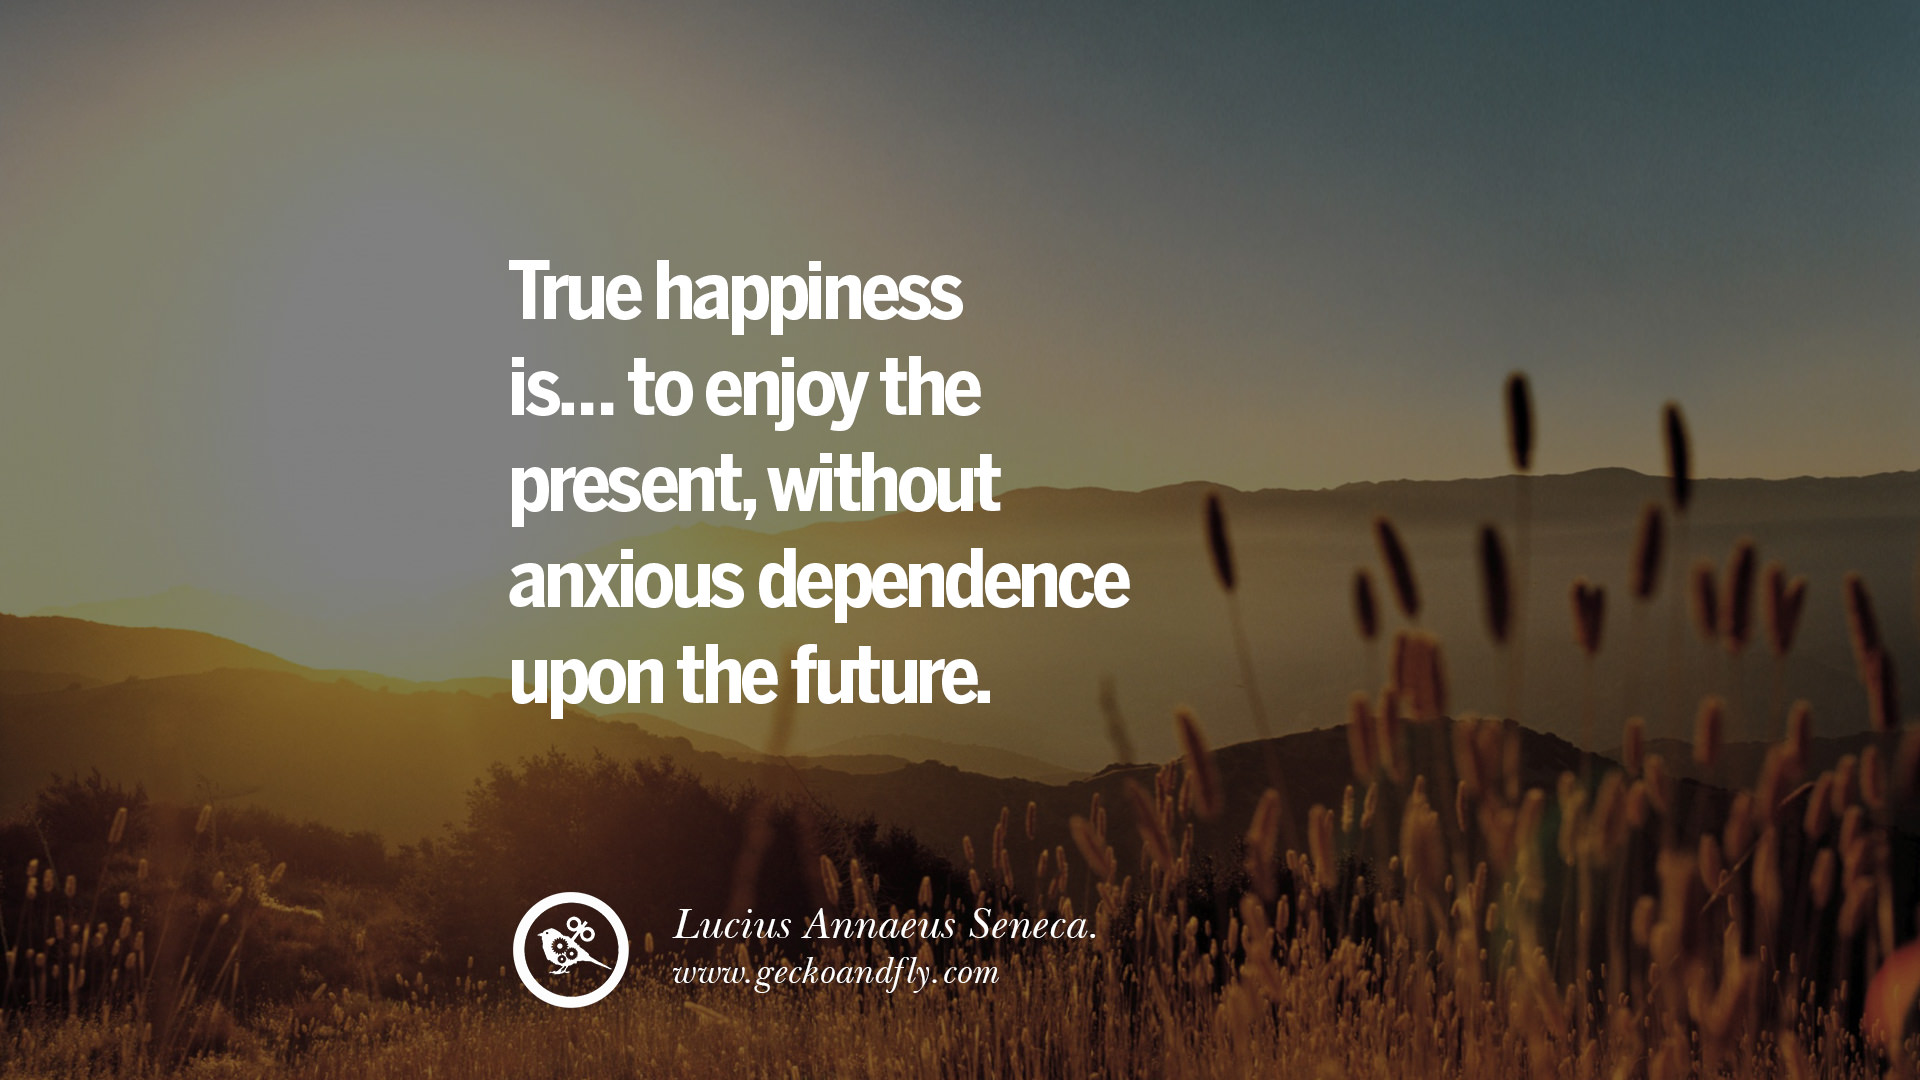 seneca on the happy life quotes